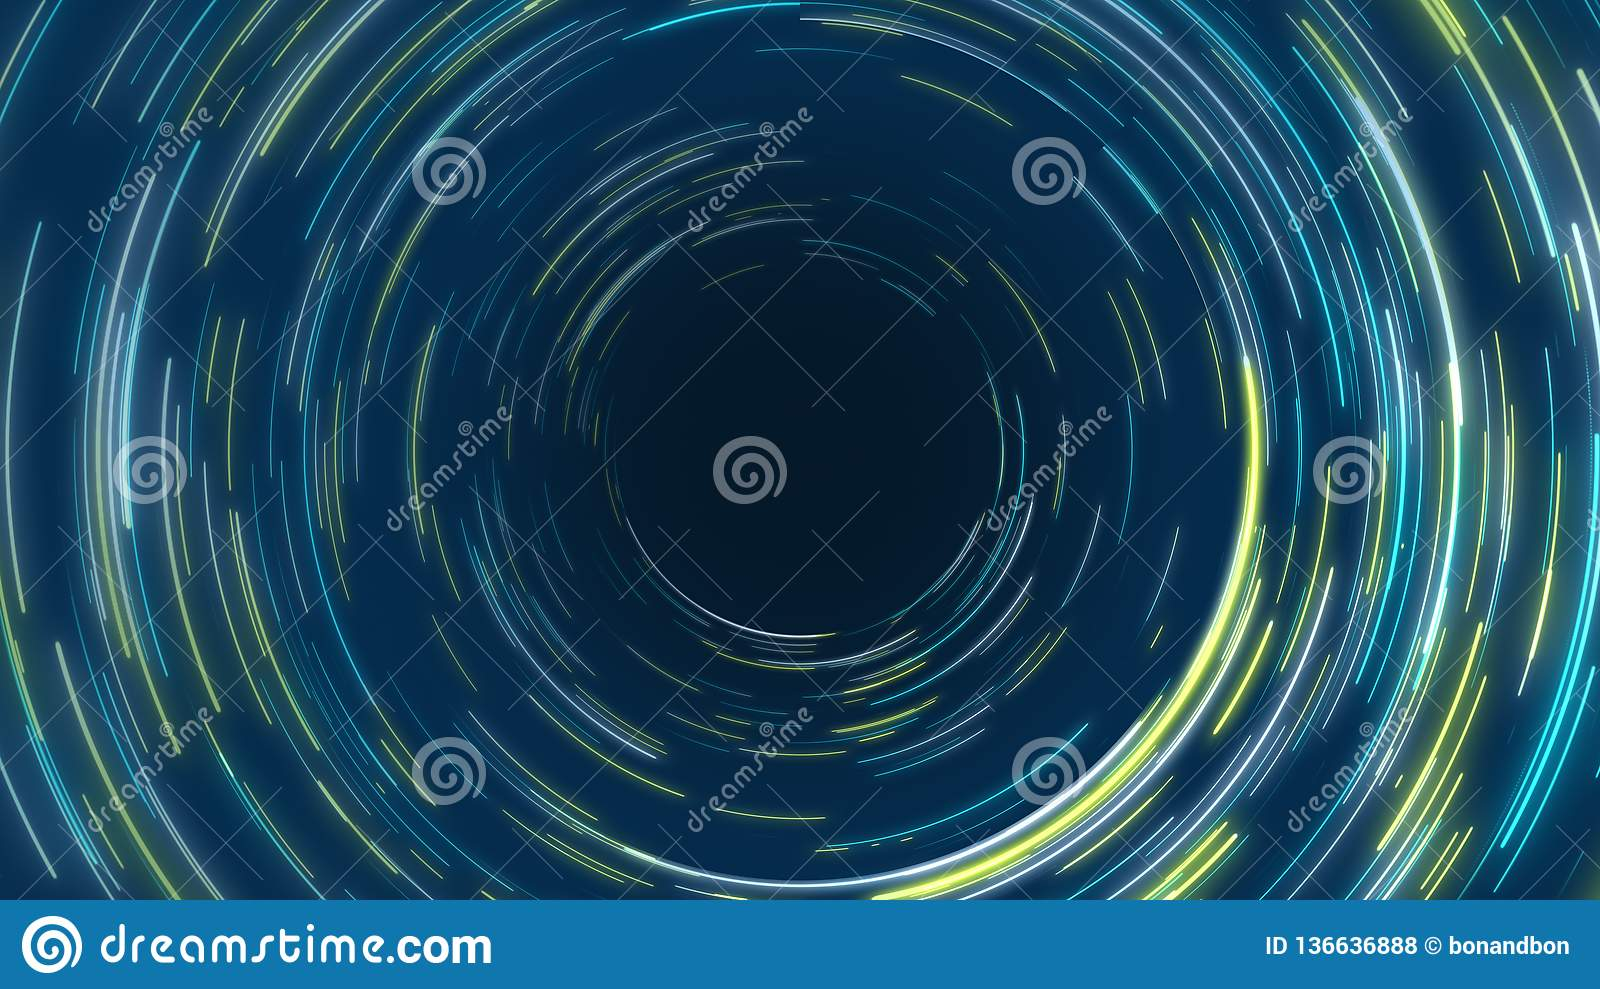 Blue and yellow abstract tunnel circular radial lines effect background